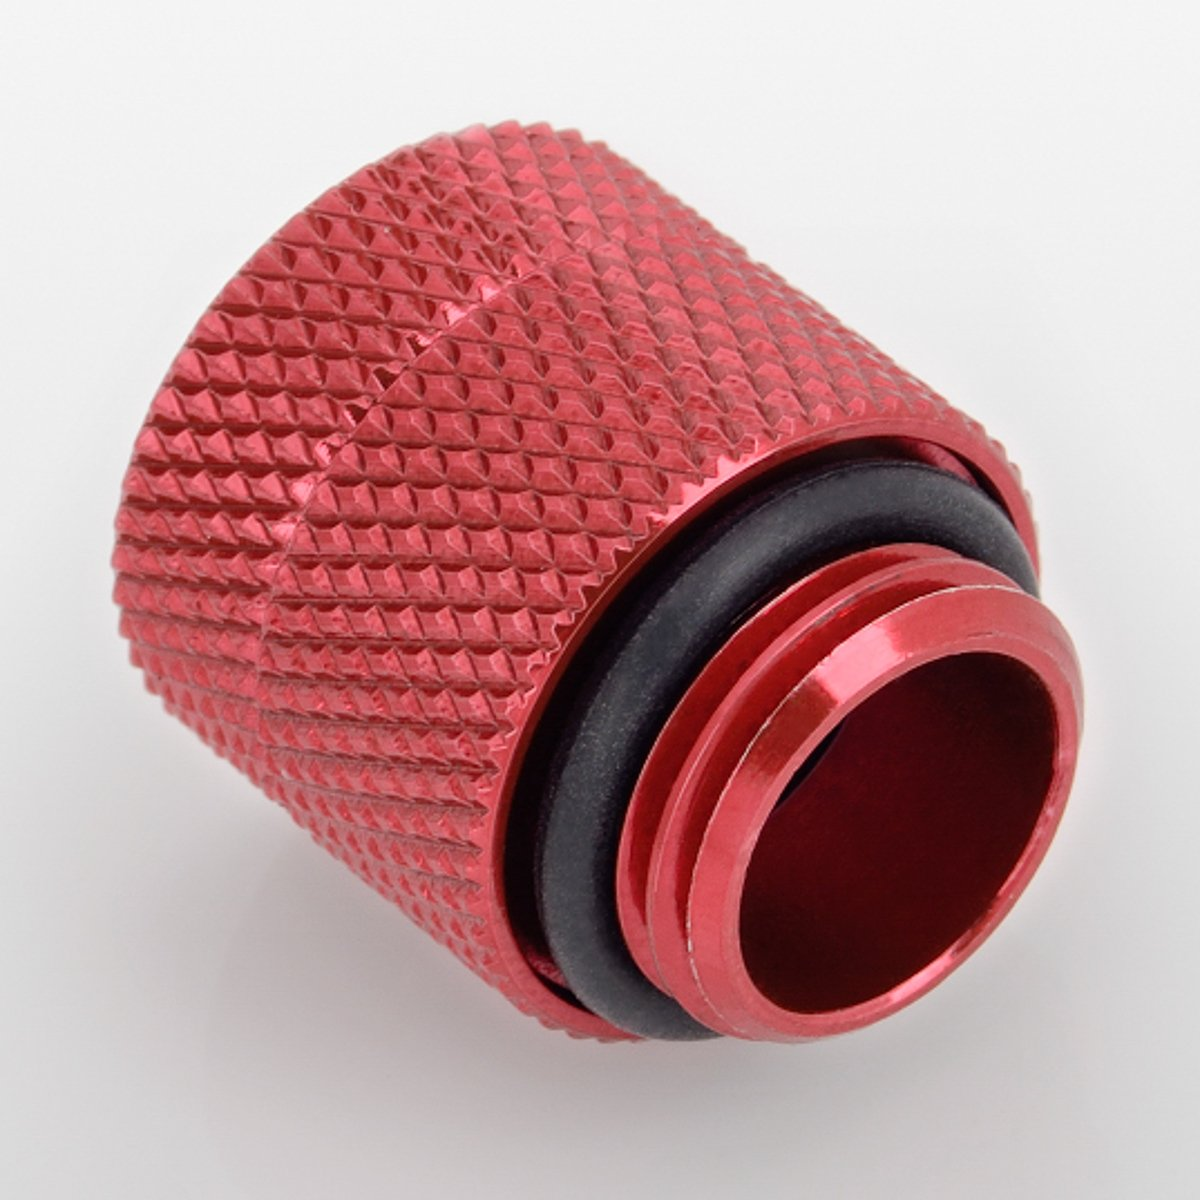 Bits Power G1/8 - IG 1/4 inch Conversion Anti Twist Adapter Deep Blood Red (BP-DBRDR-C) by Bits Power (Image #2)